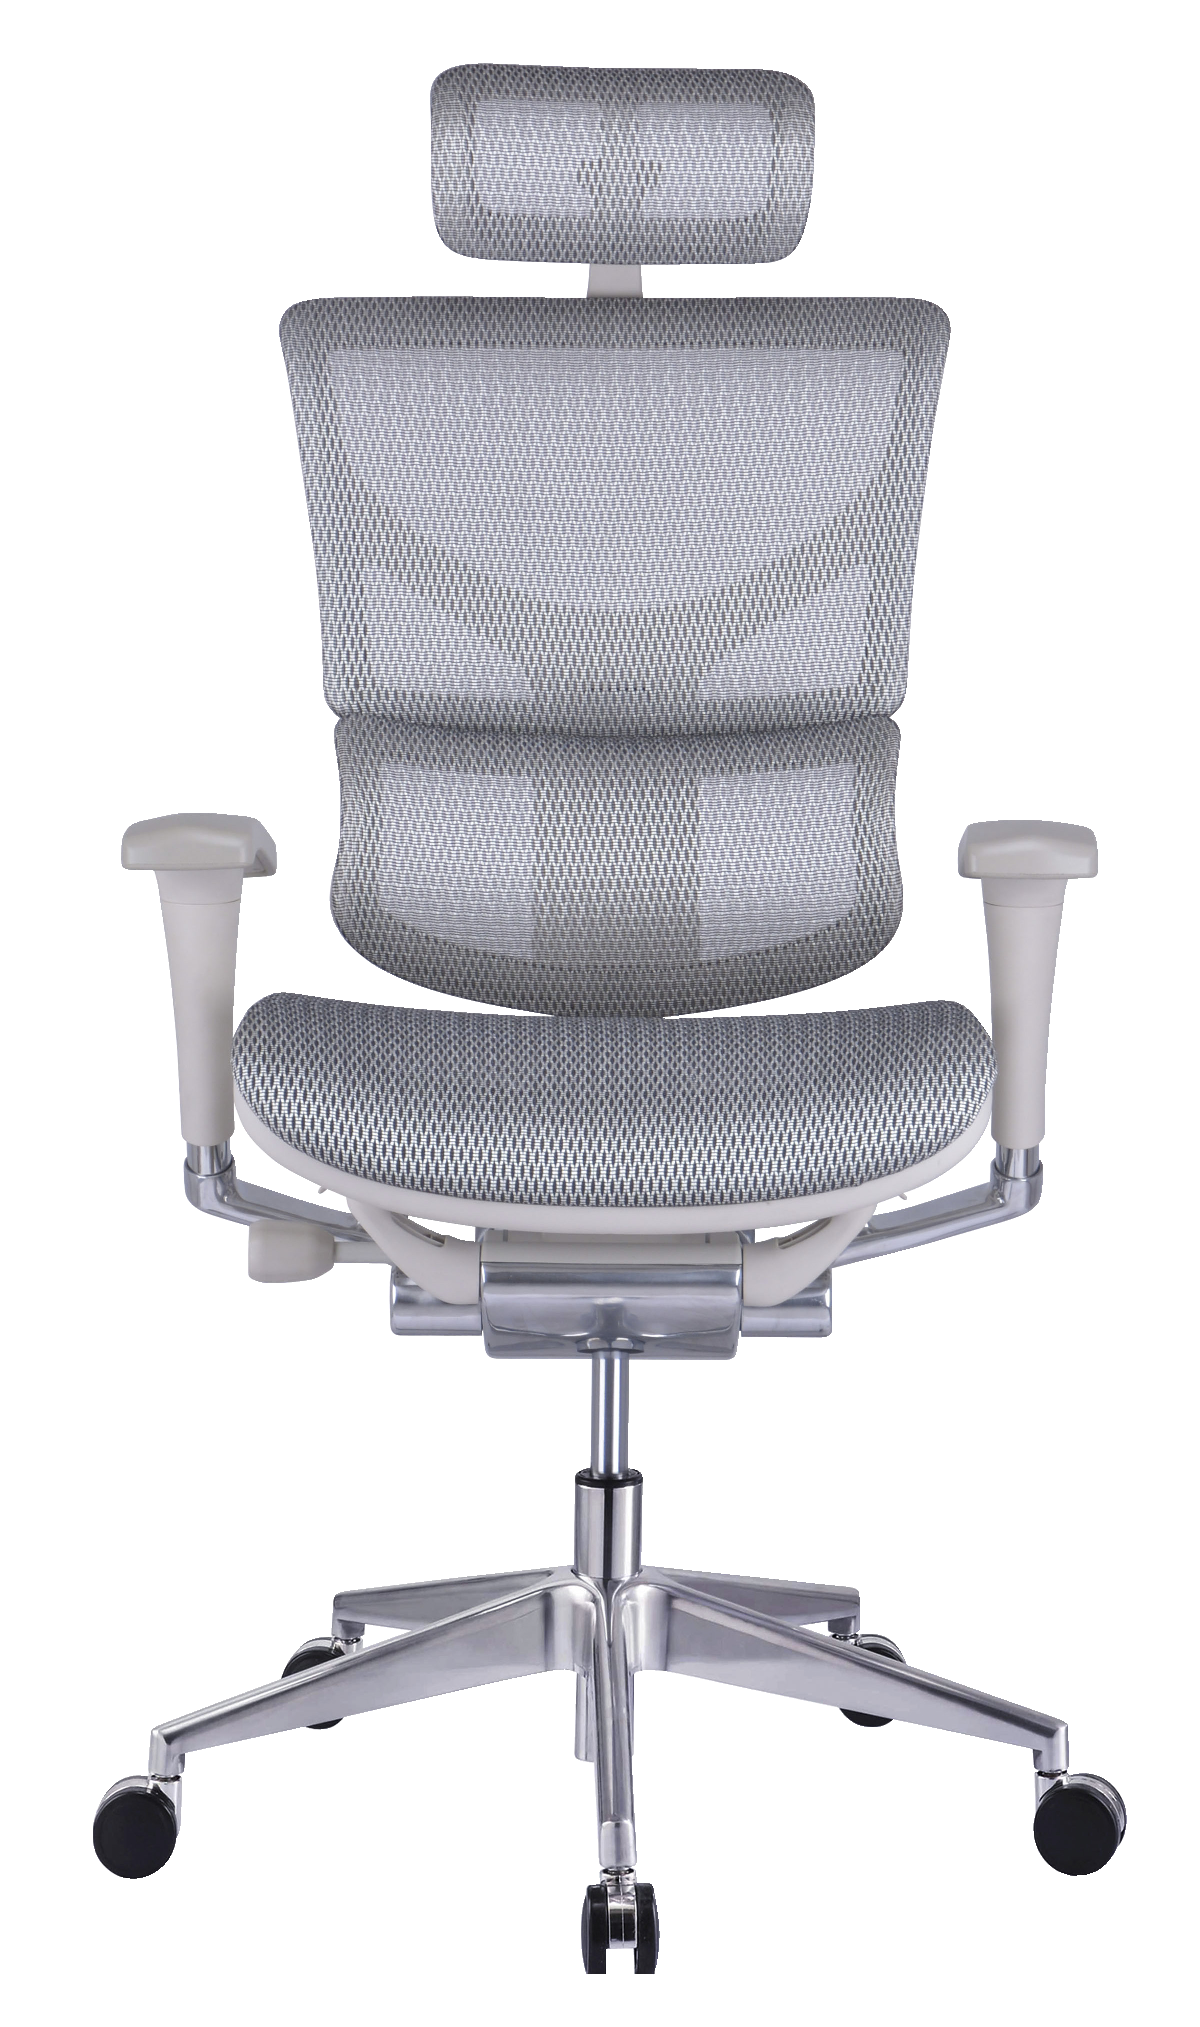 rioli ergonomic chair white more my style pinterest kneeling